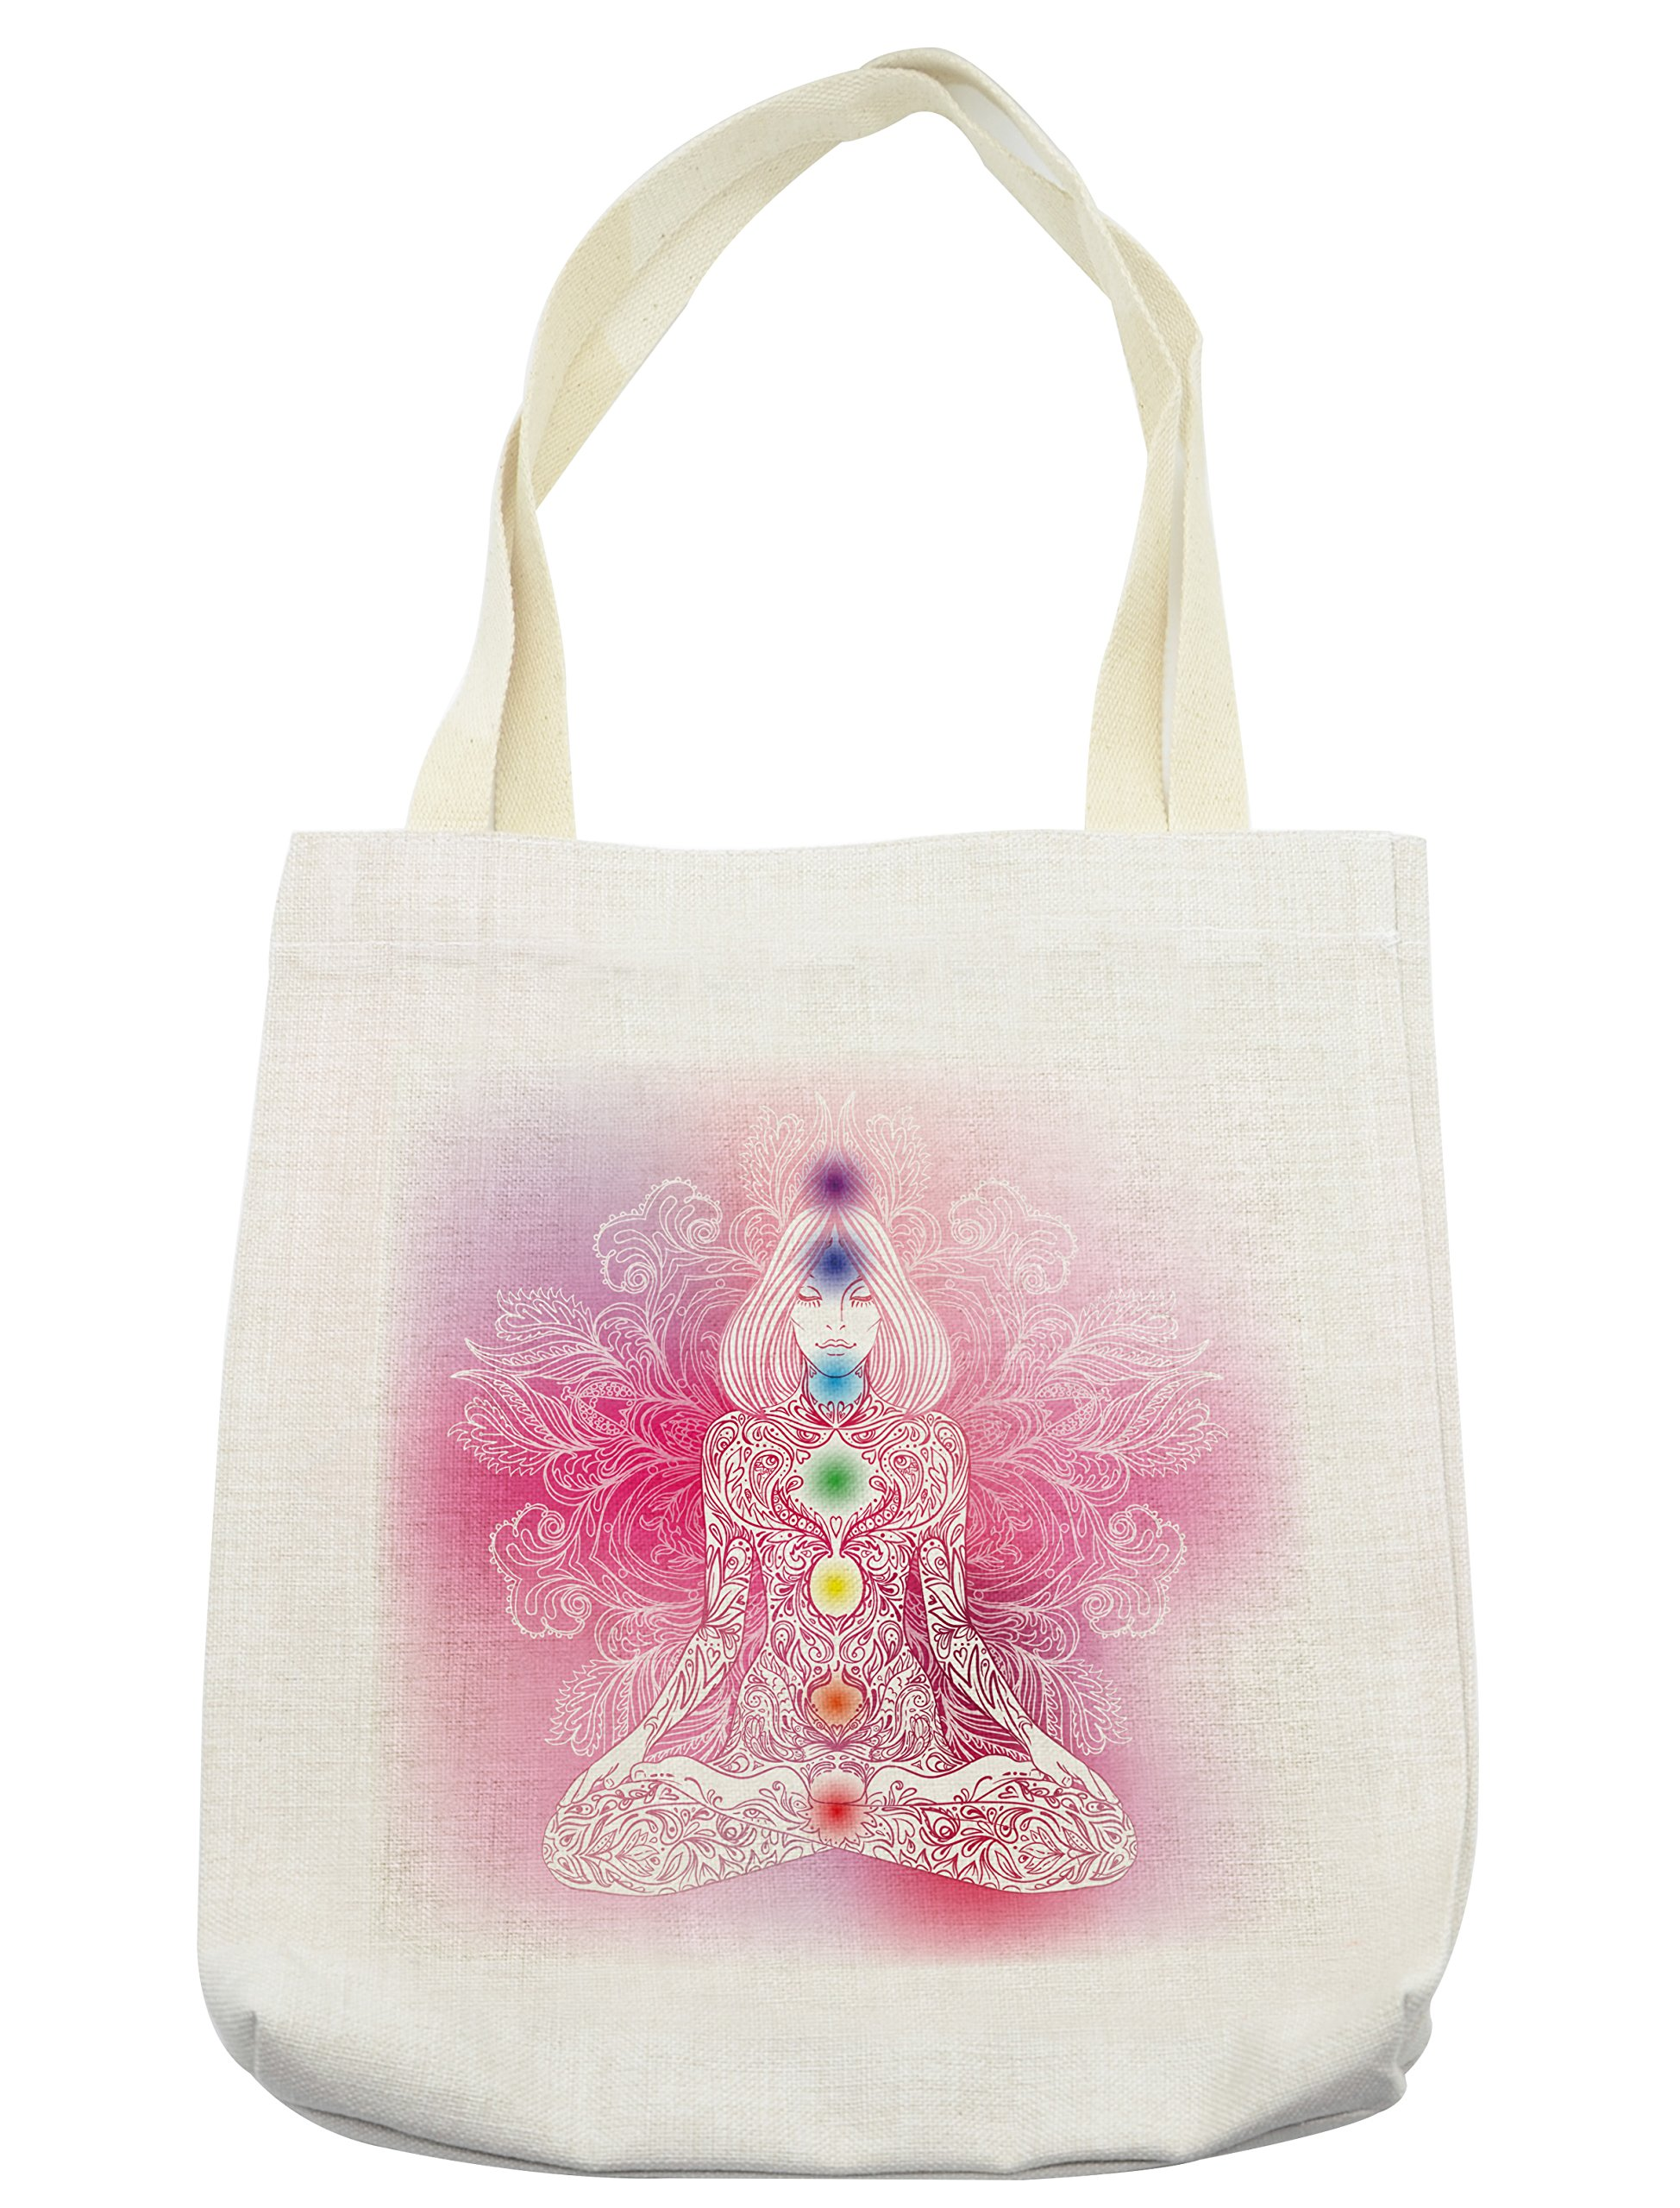 Lunarable Chakra Tote Bag, Mystical Female Character with Lace Inspired Lines Solar System Balance Bohemian, Cloth Linen Reusable Bag for Shopping Groceries Books Beach Travel & More, Cream